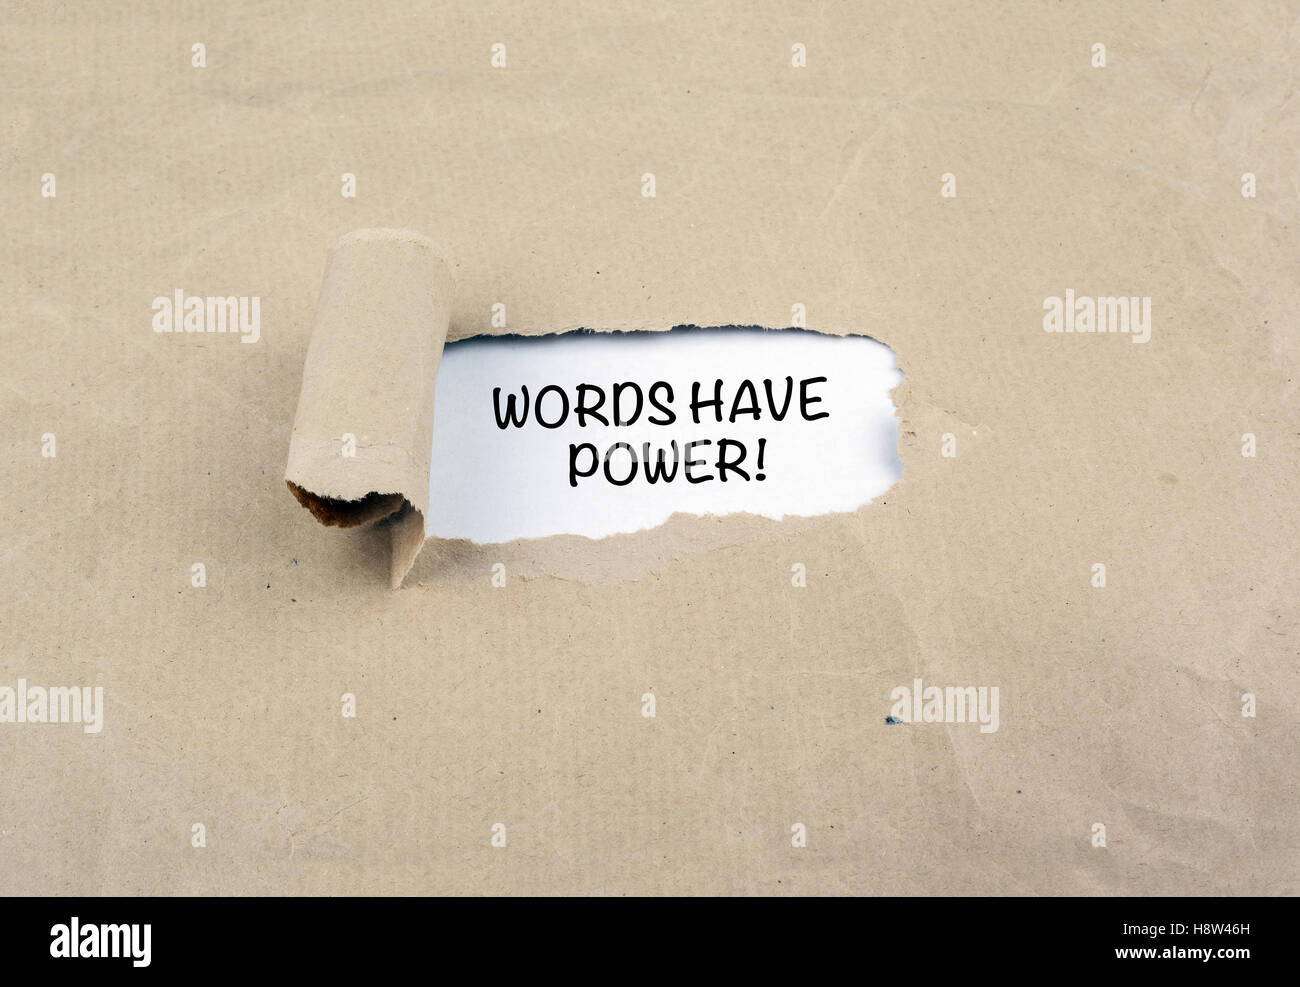 Inscription revealed on old paper - Words Have Power! - Stock Image